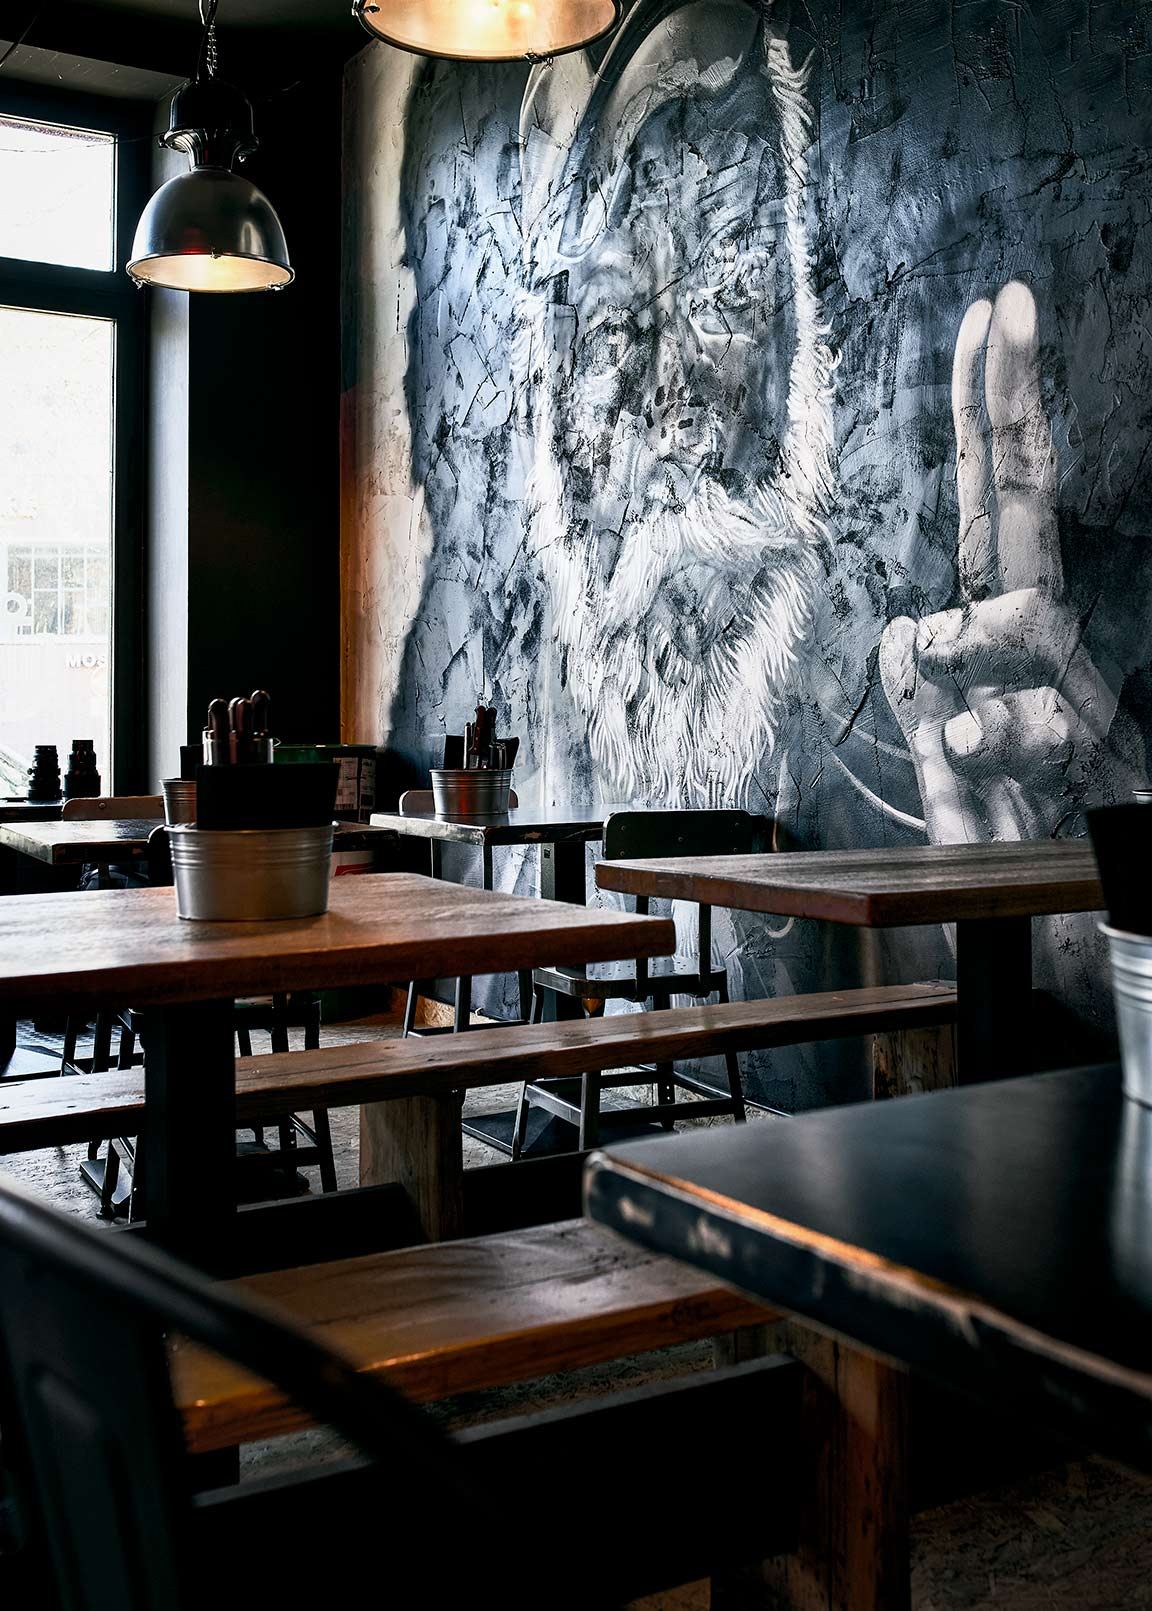 Chairs and tables in a restaurant with a painting of a captain showing the victory symbol with his fingers food commercial photography Philipp Burkart young photographer in Hamburg